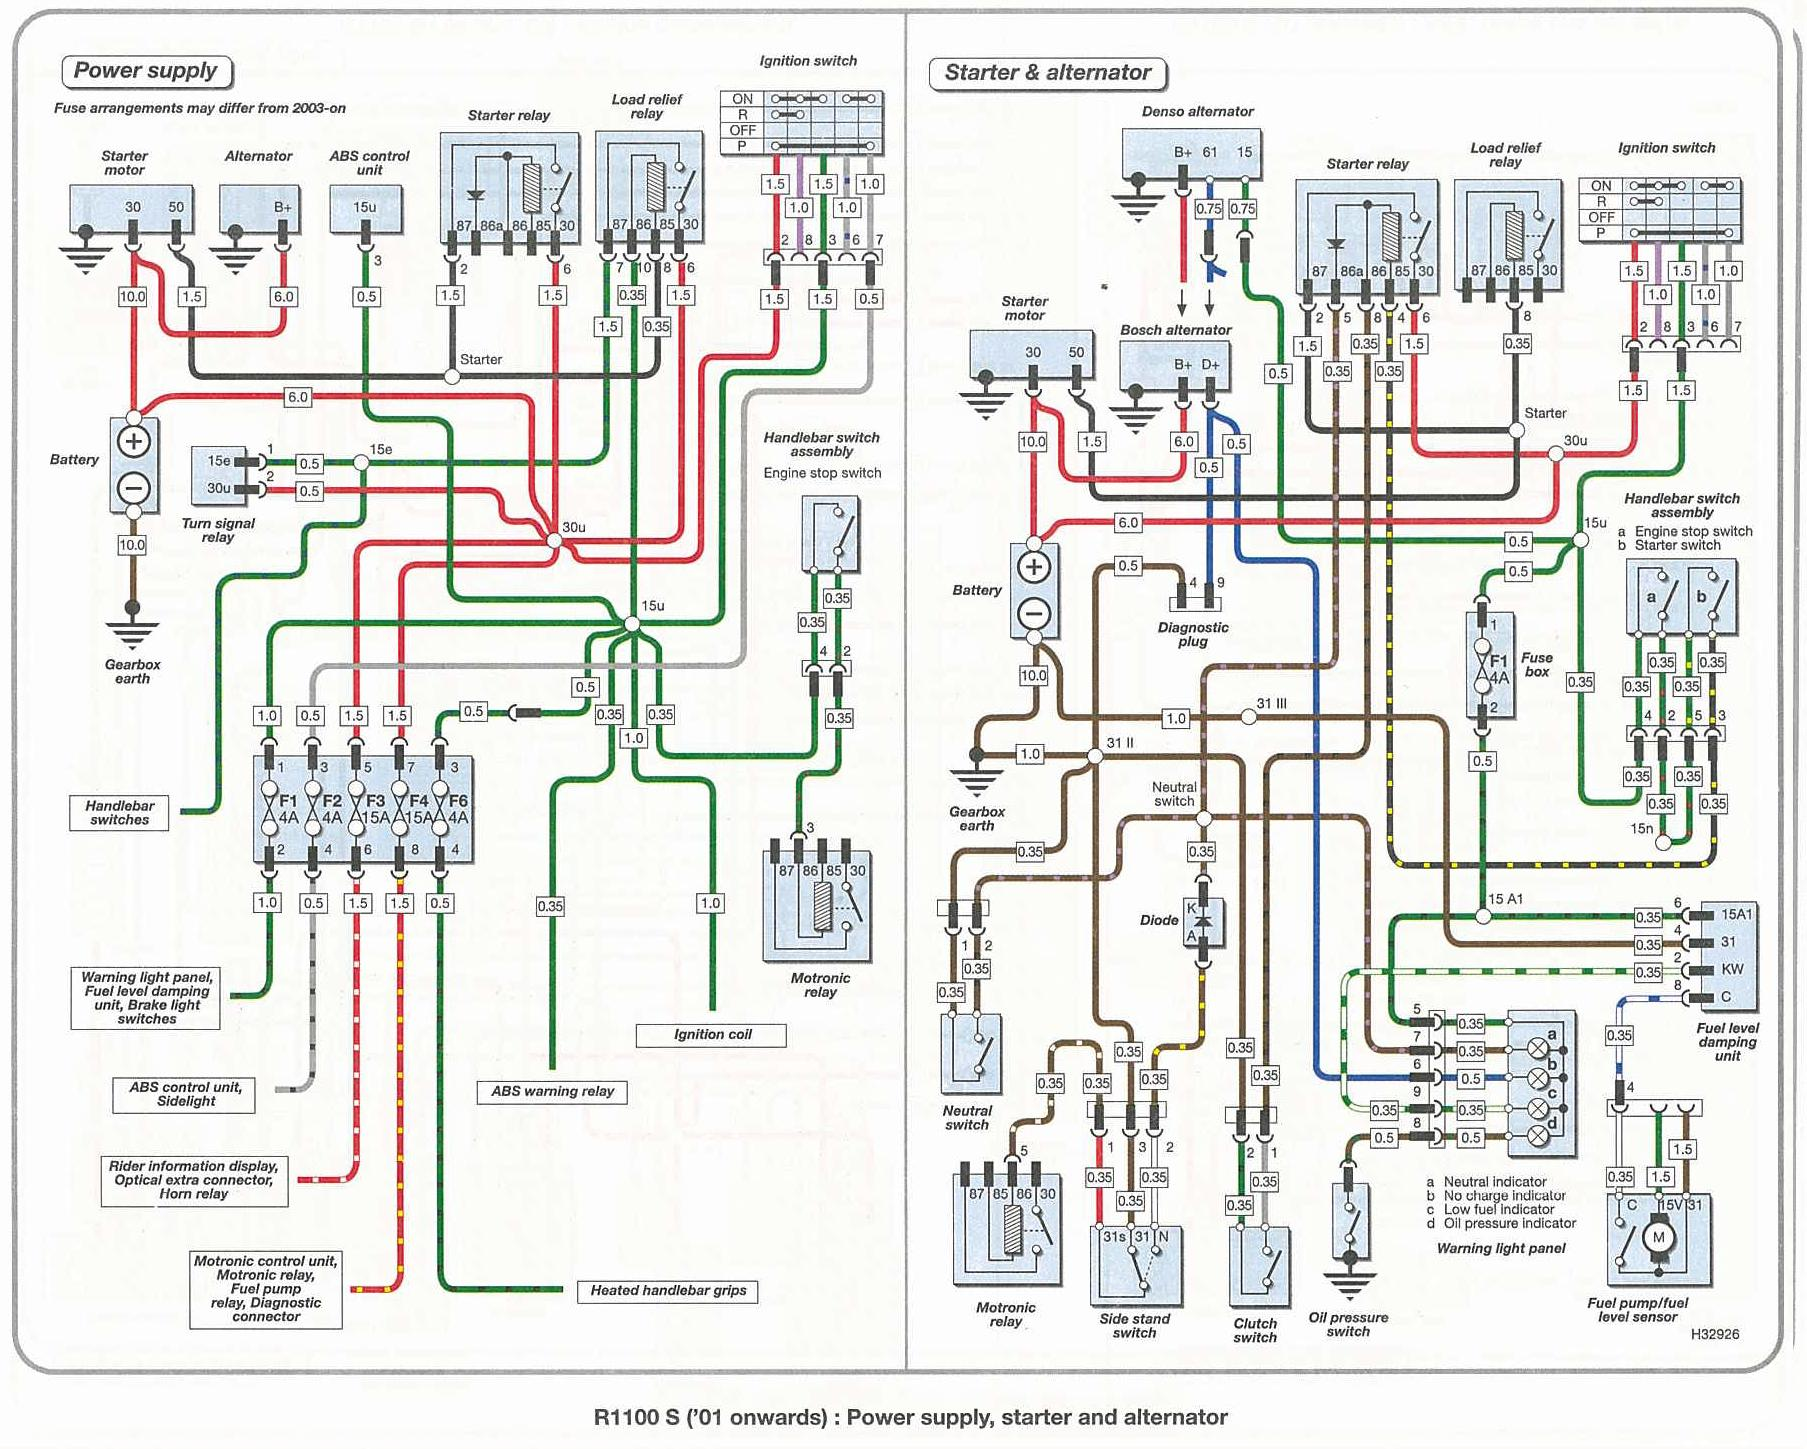 wiring05 bmw wiring diagram bmw wiring diagrams e39 \u2022 wiring diagrams j bmw r75/5 wiring diagram at gsmx.co